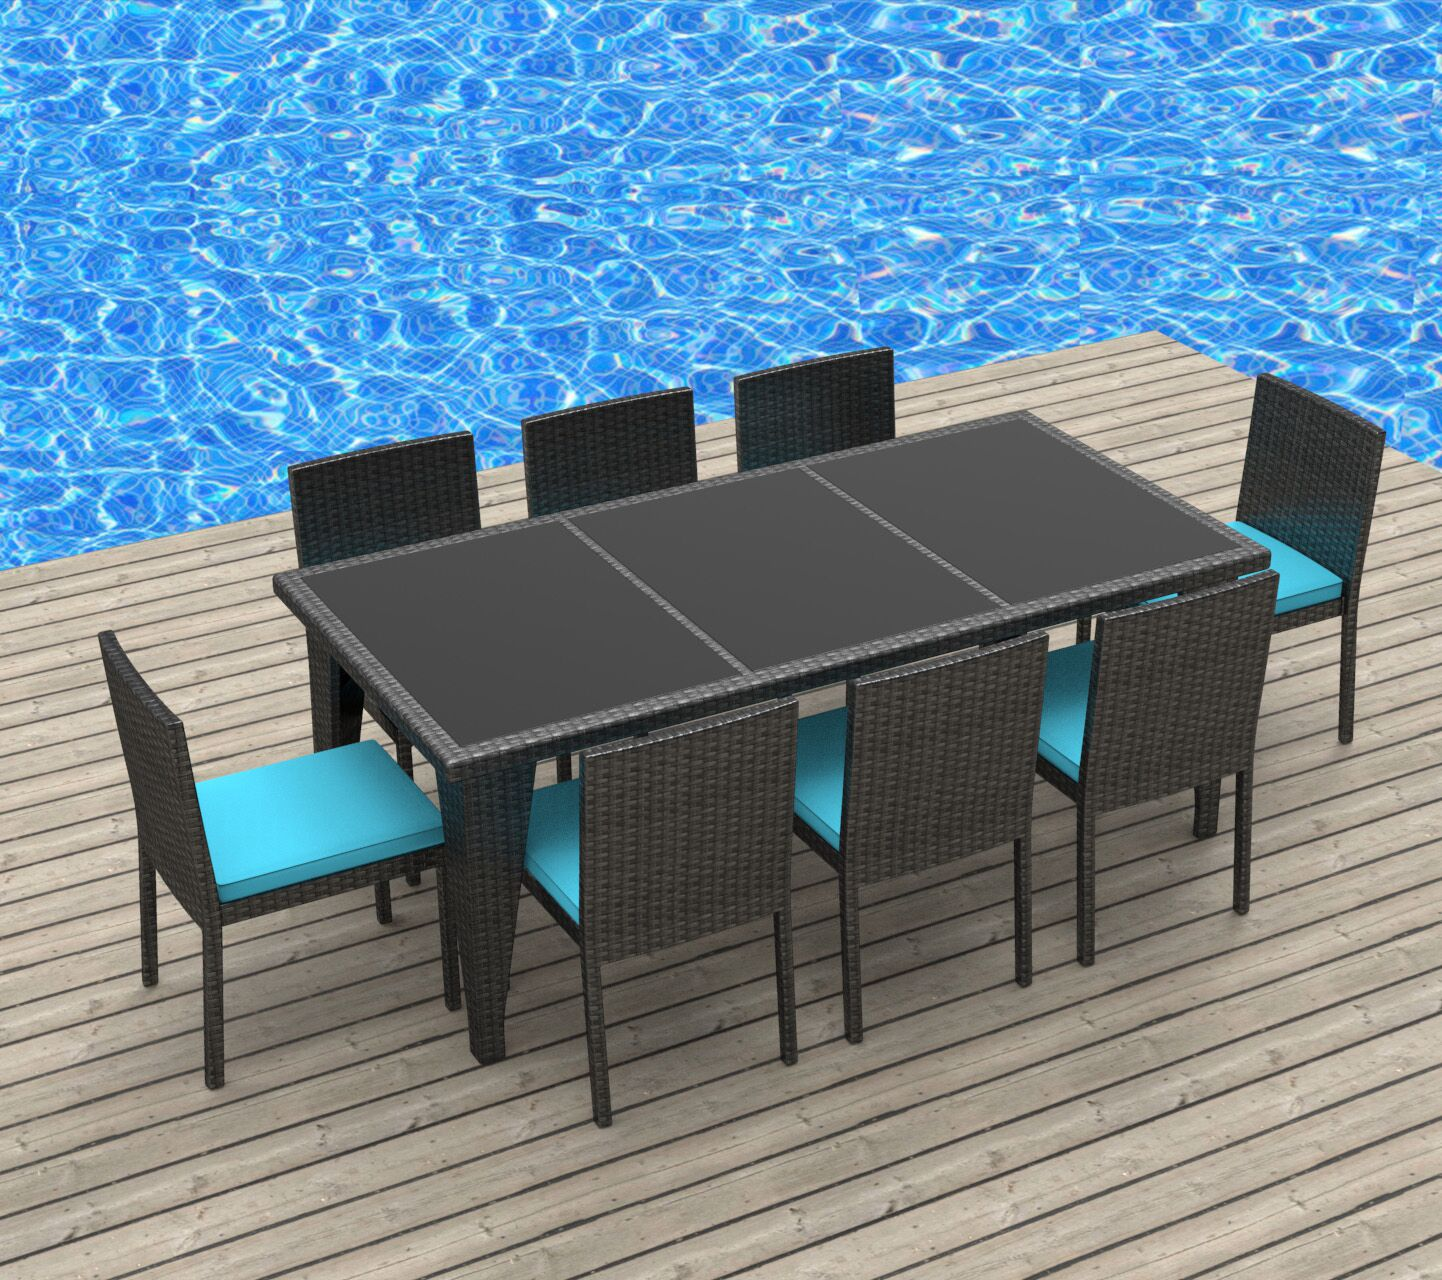 9 Piece Dining Set with Cushions Cushion Color: Sea Blue, Color: Gray